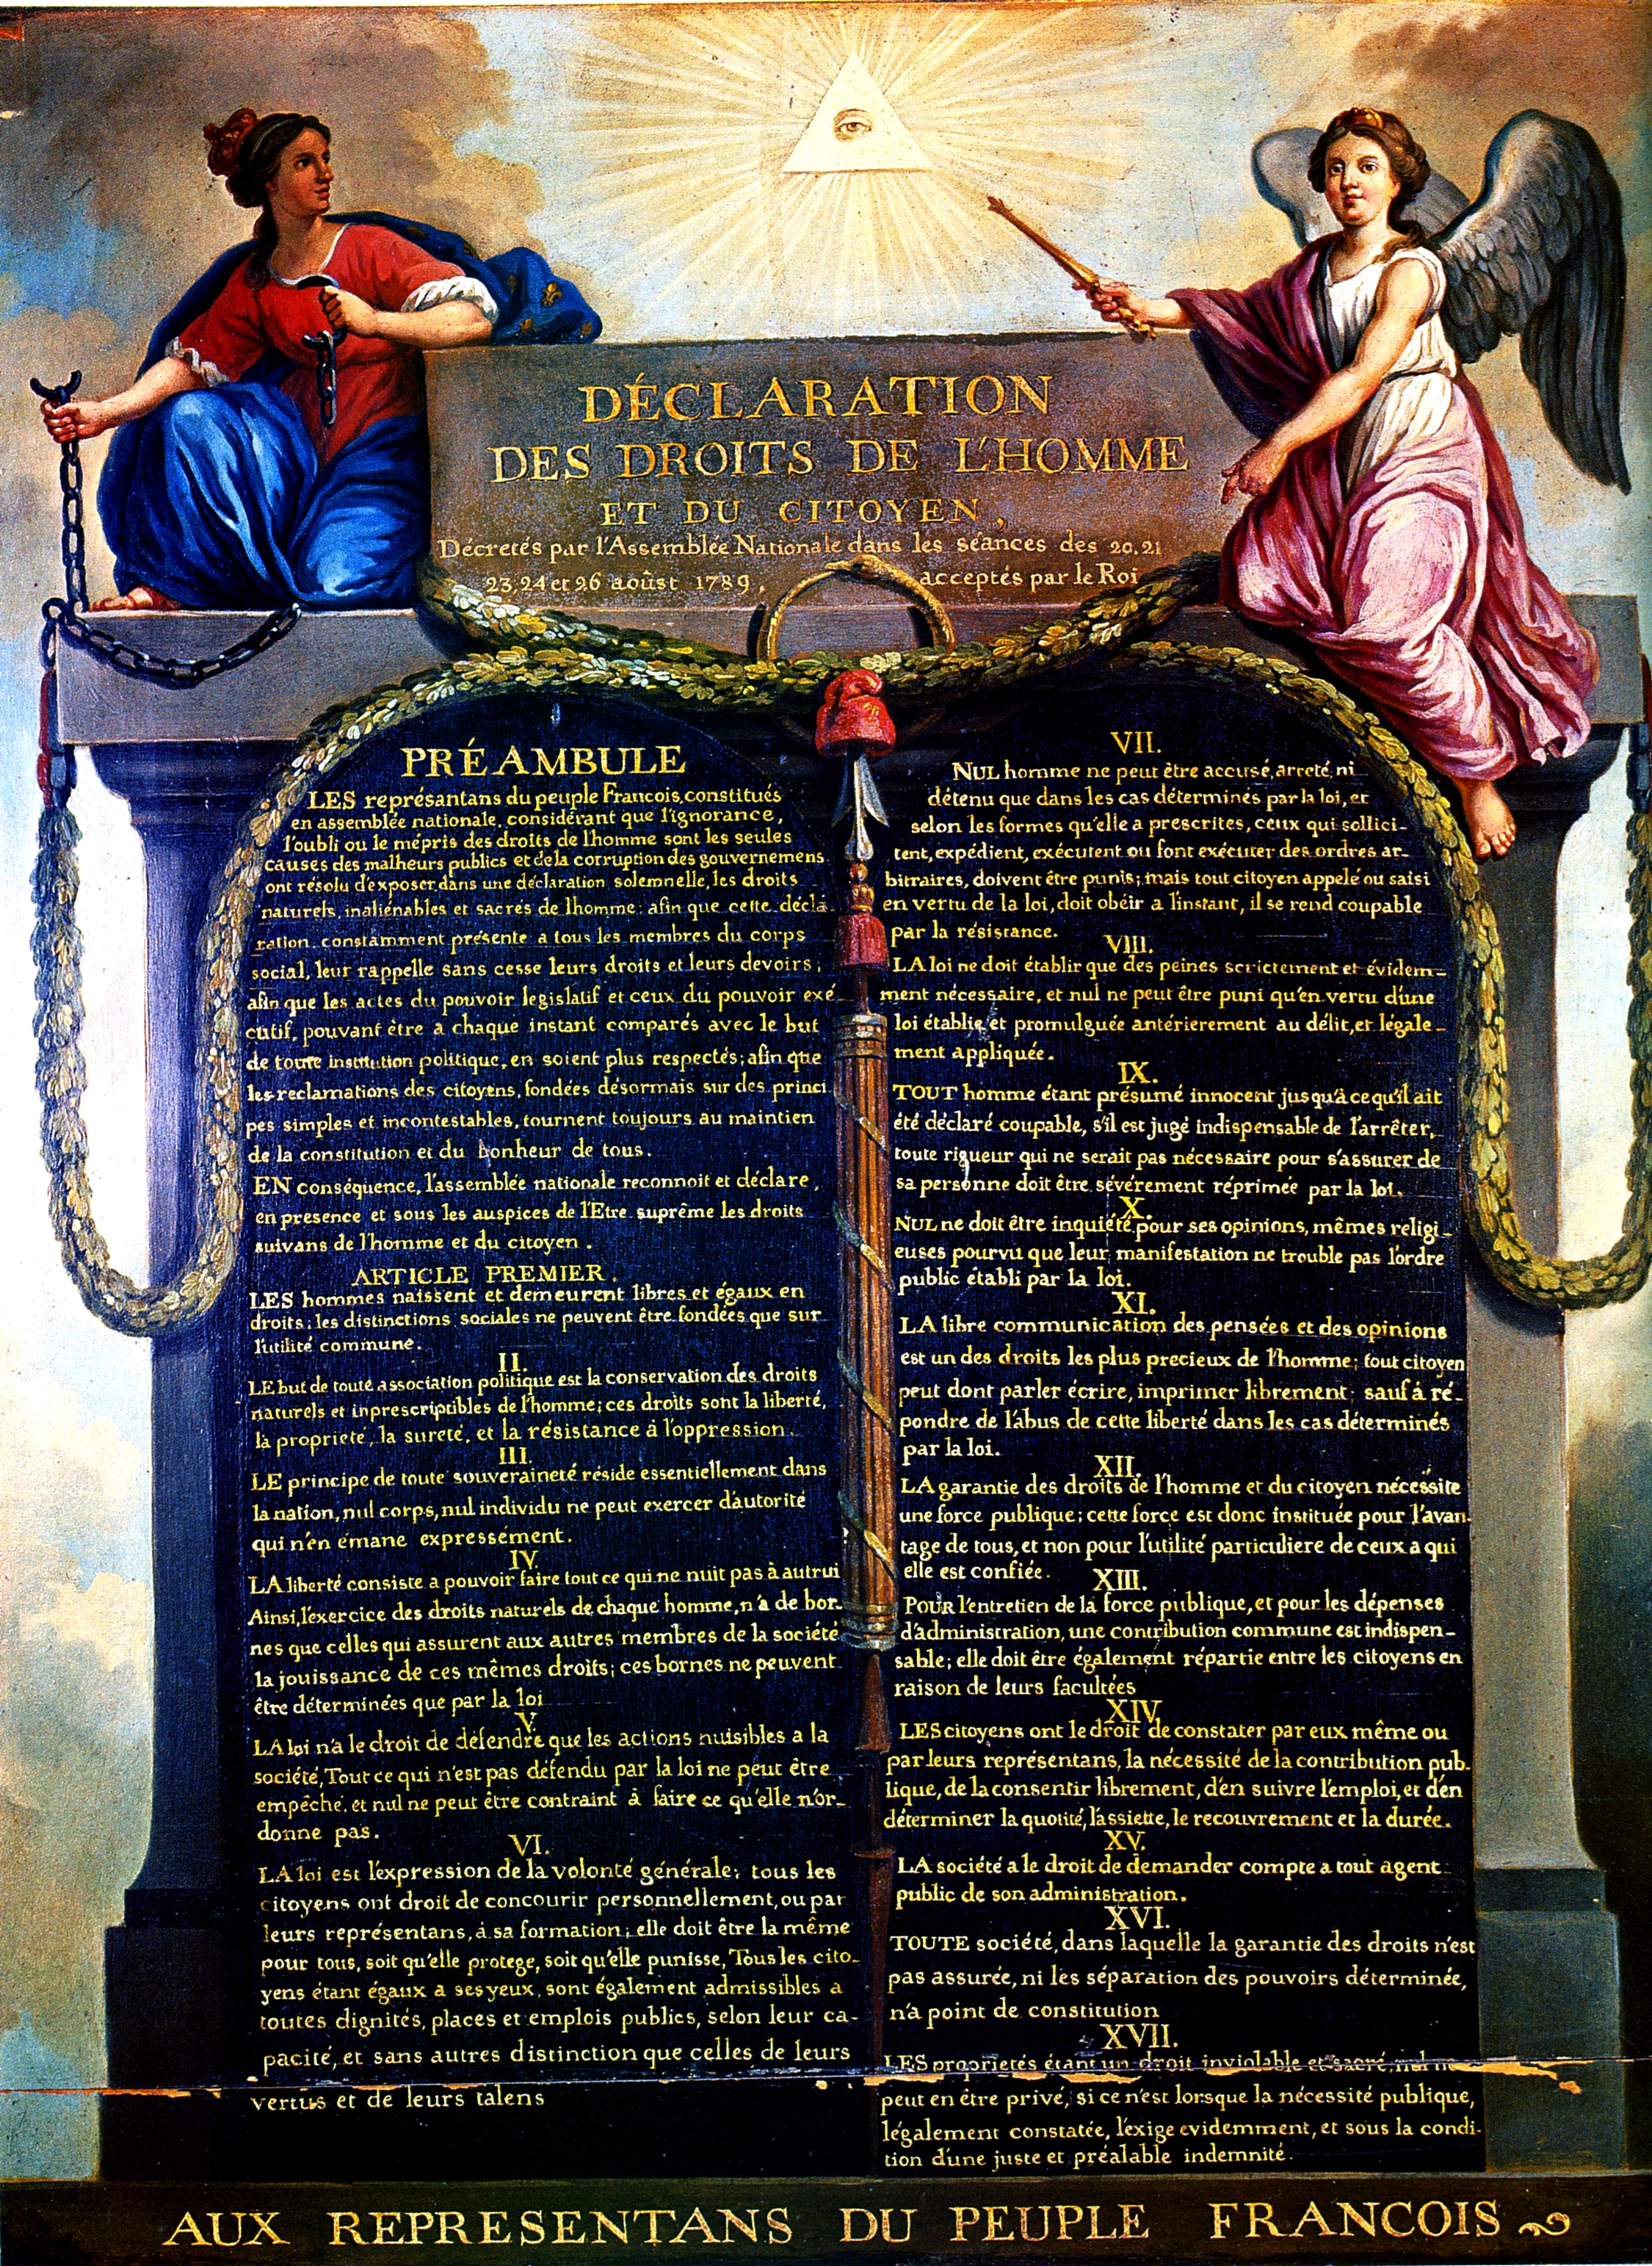 The 1789 Declaration of the Rights of Man and of the Citizen: tablets of a new civil religion.